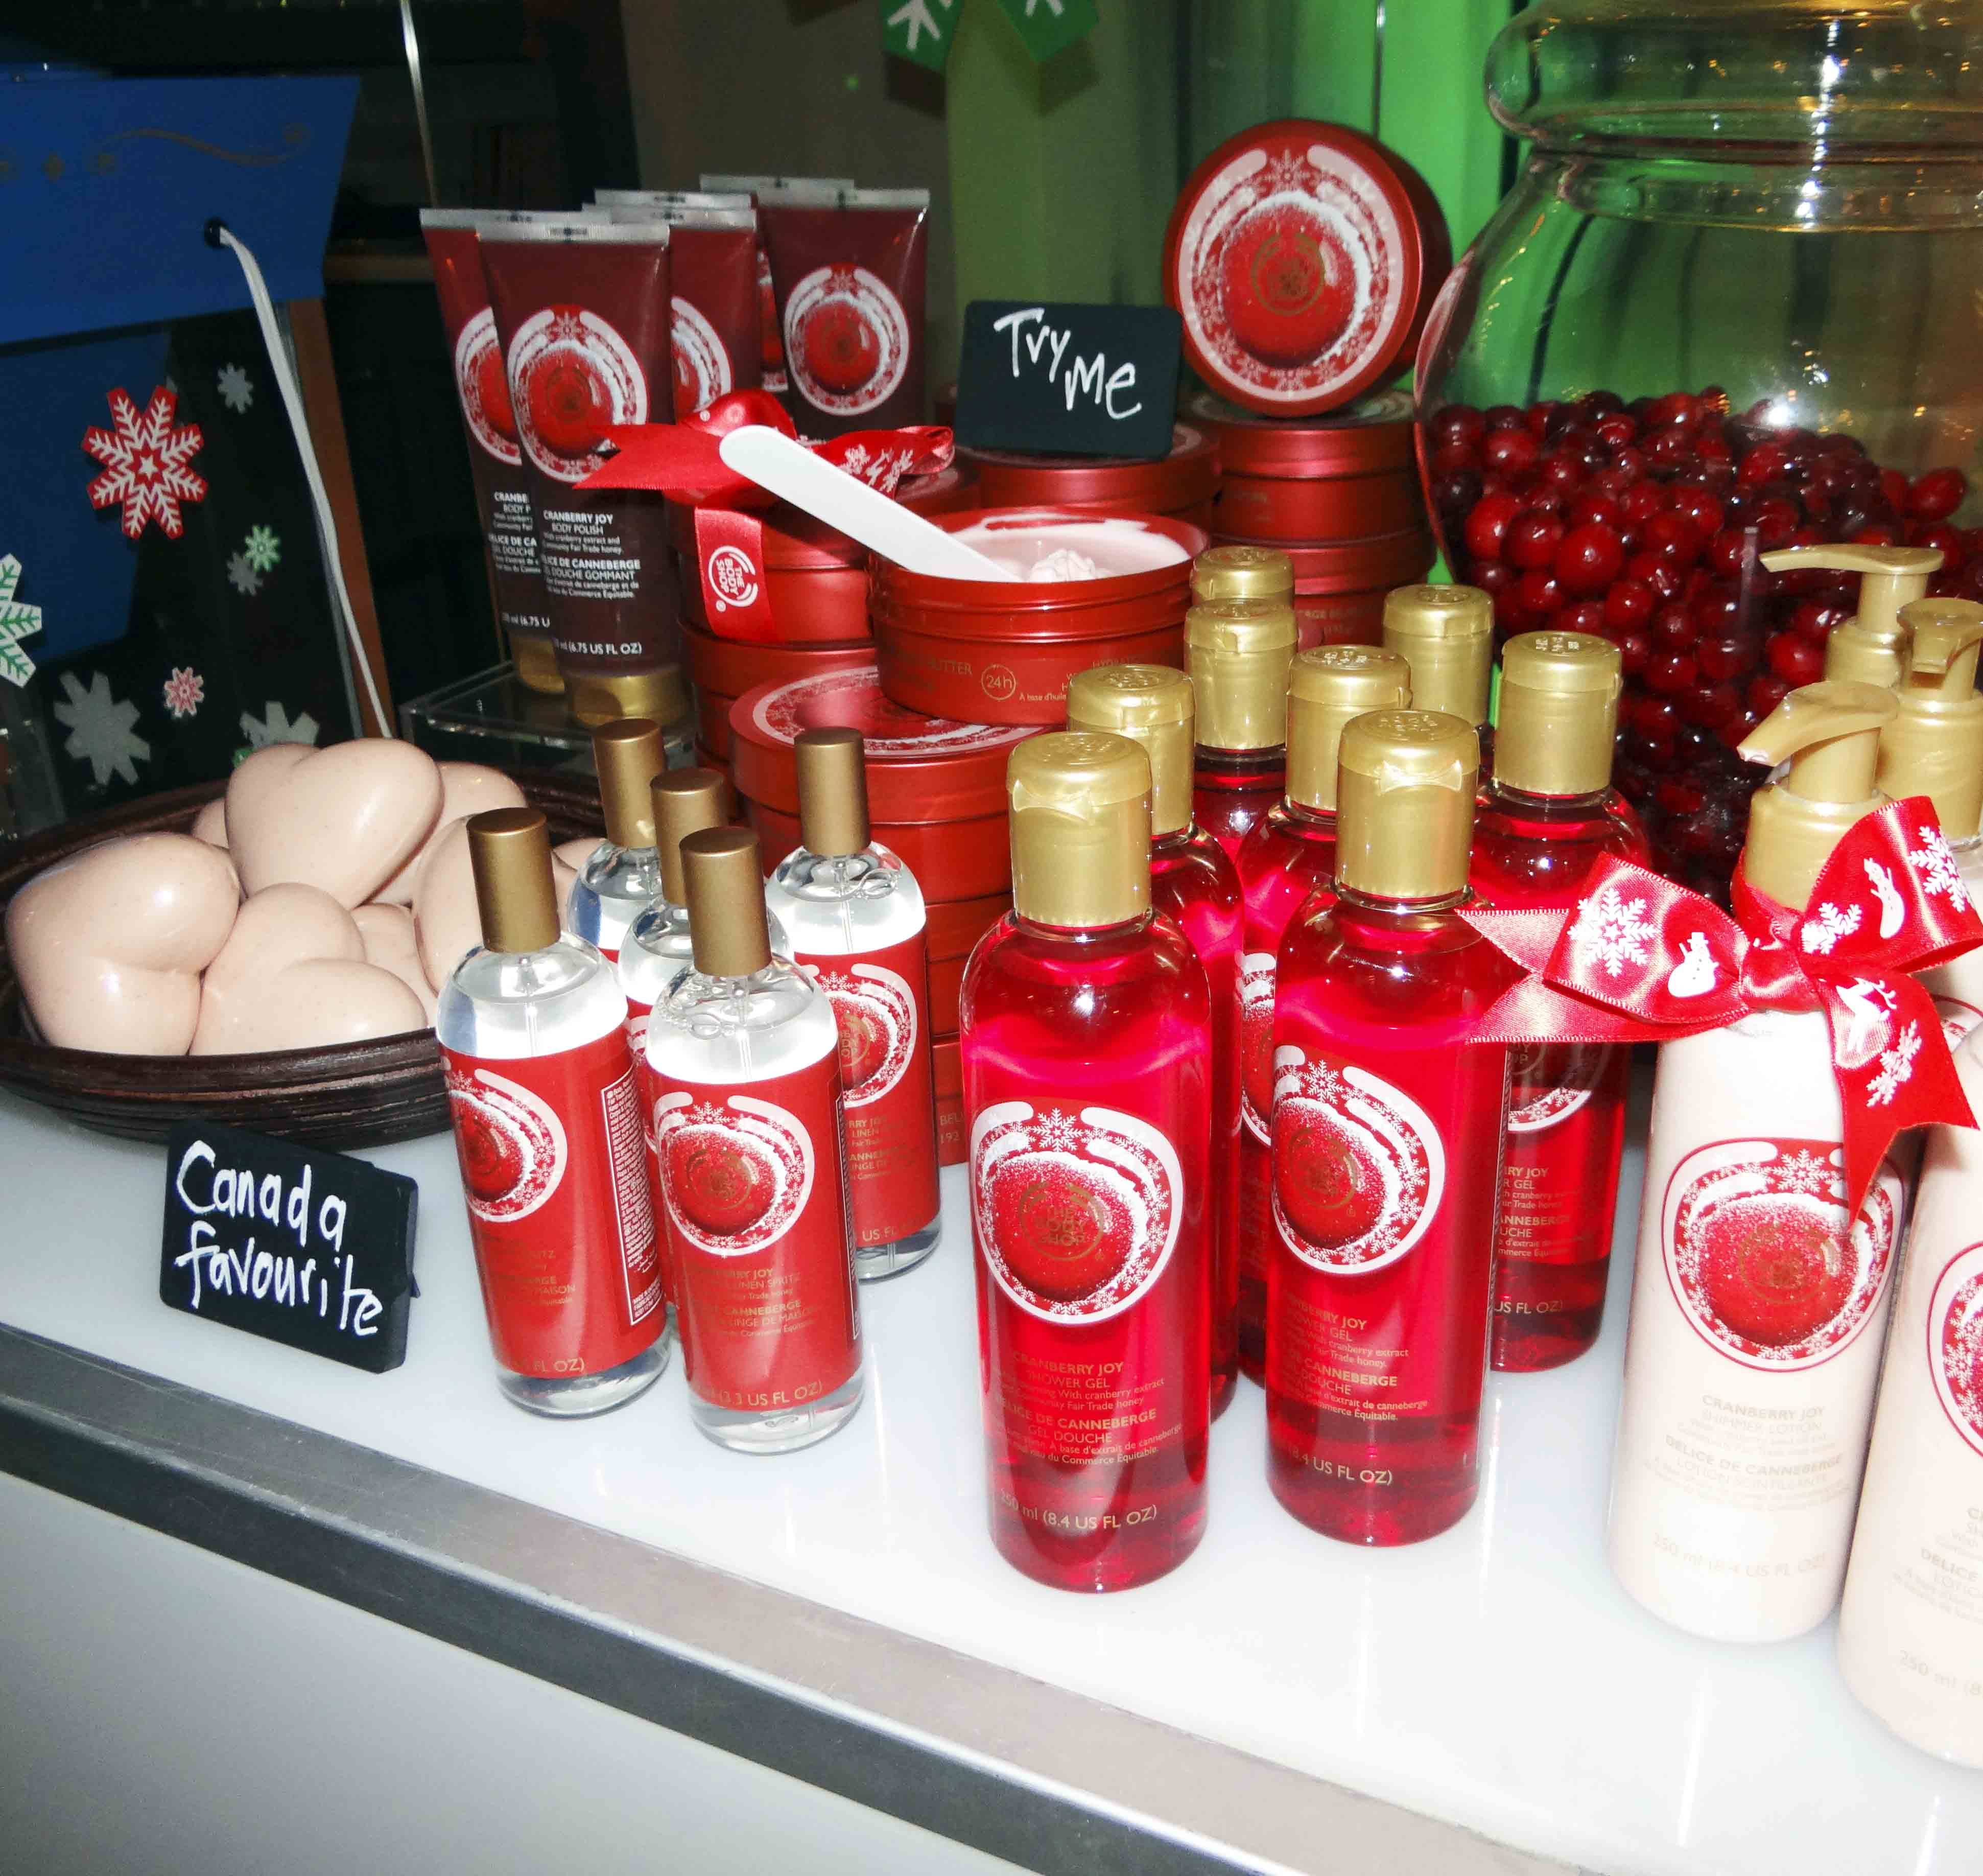 Holiday Gift Collection from The Body Shop - hautecanada.com - 7